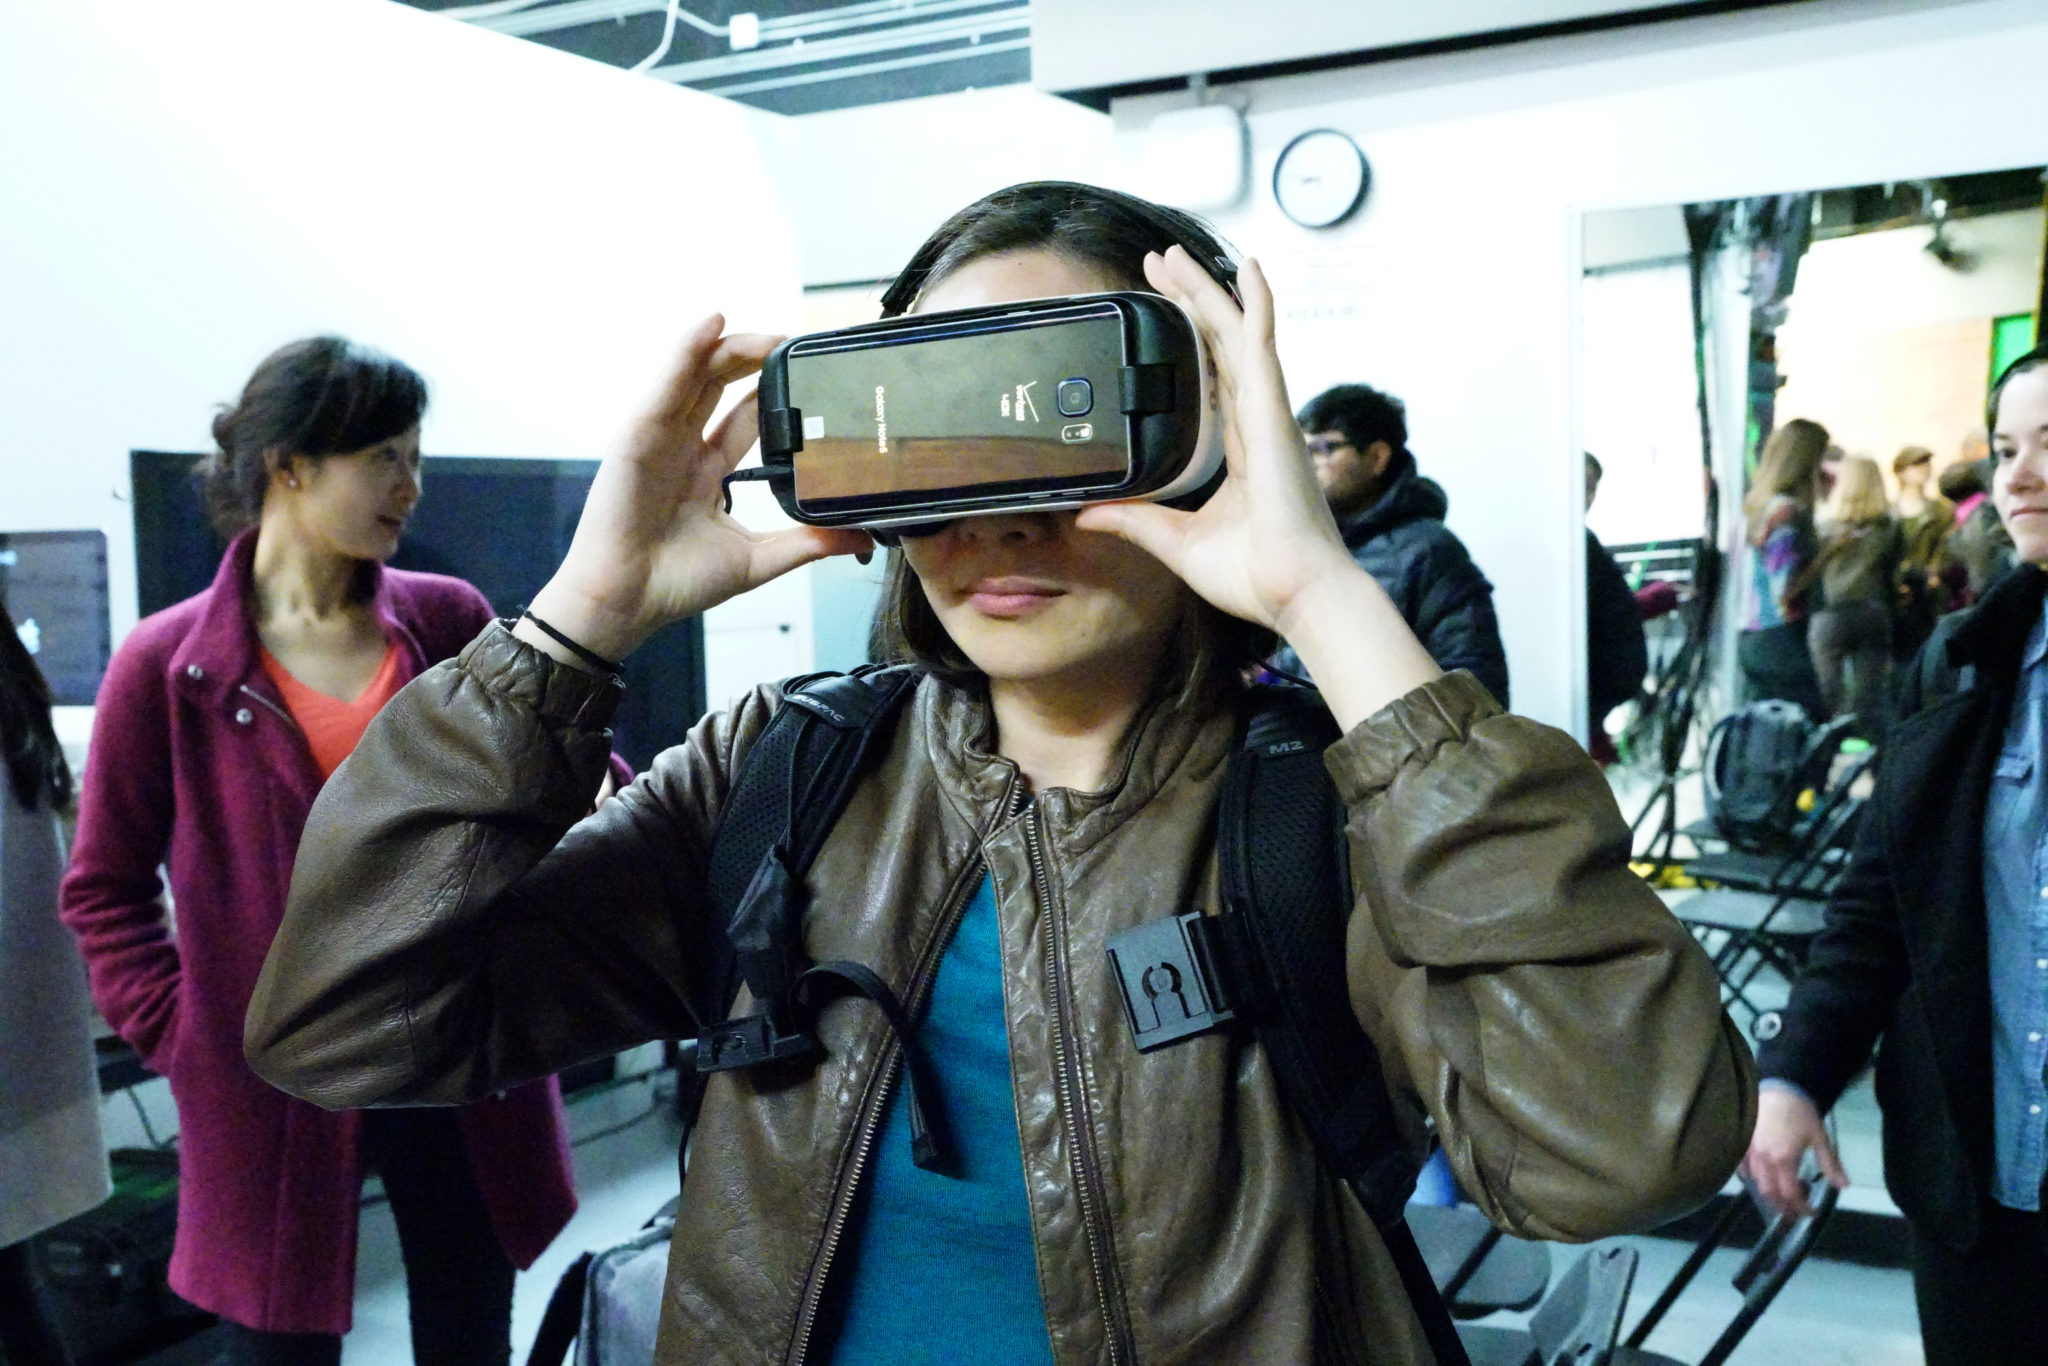 Student wearing virtual reality headset at a campus event